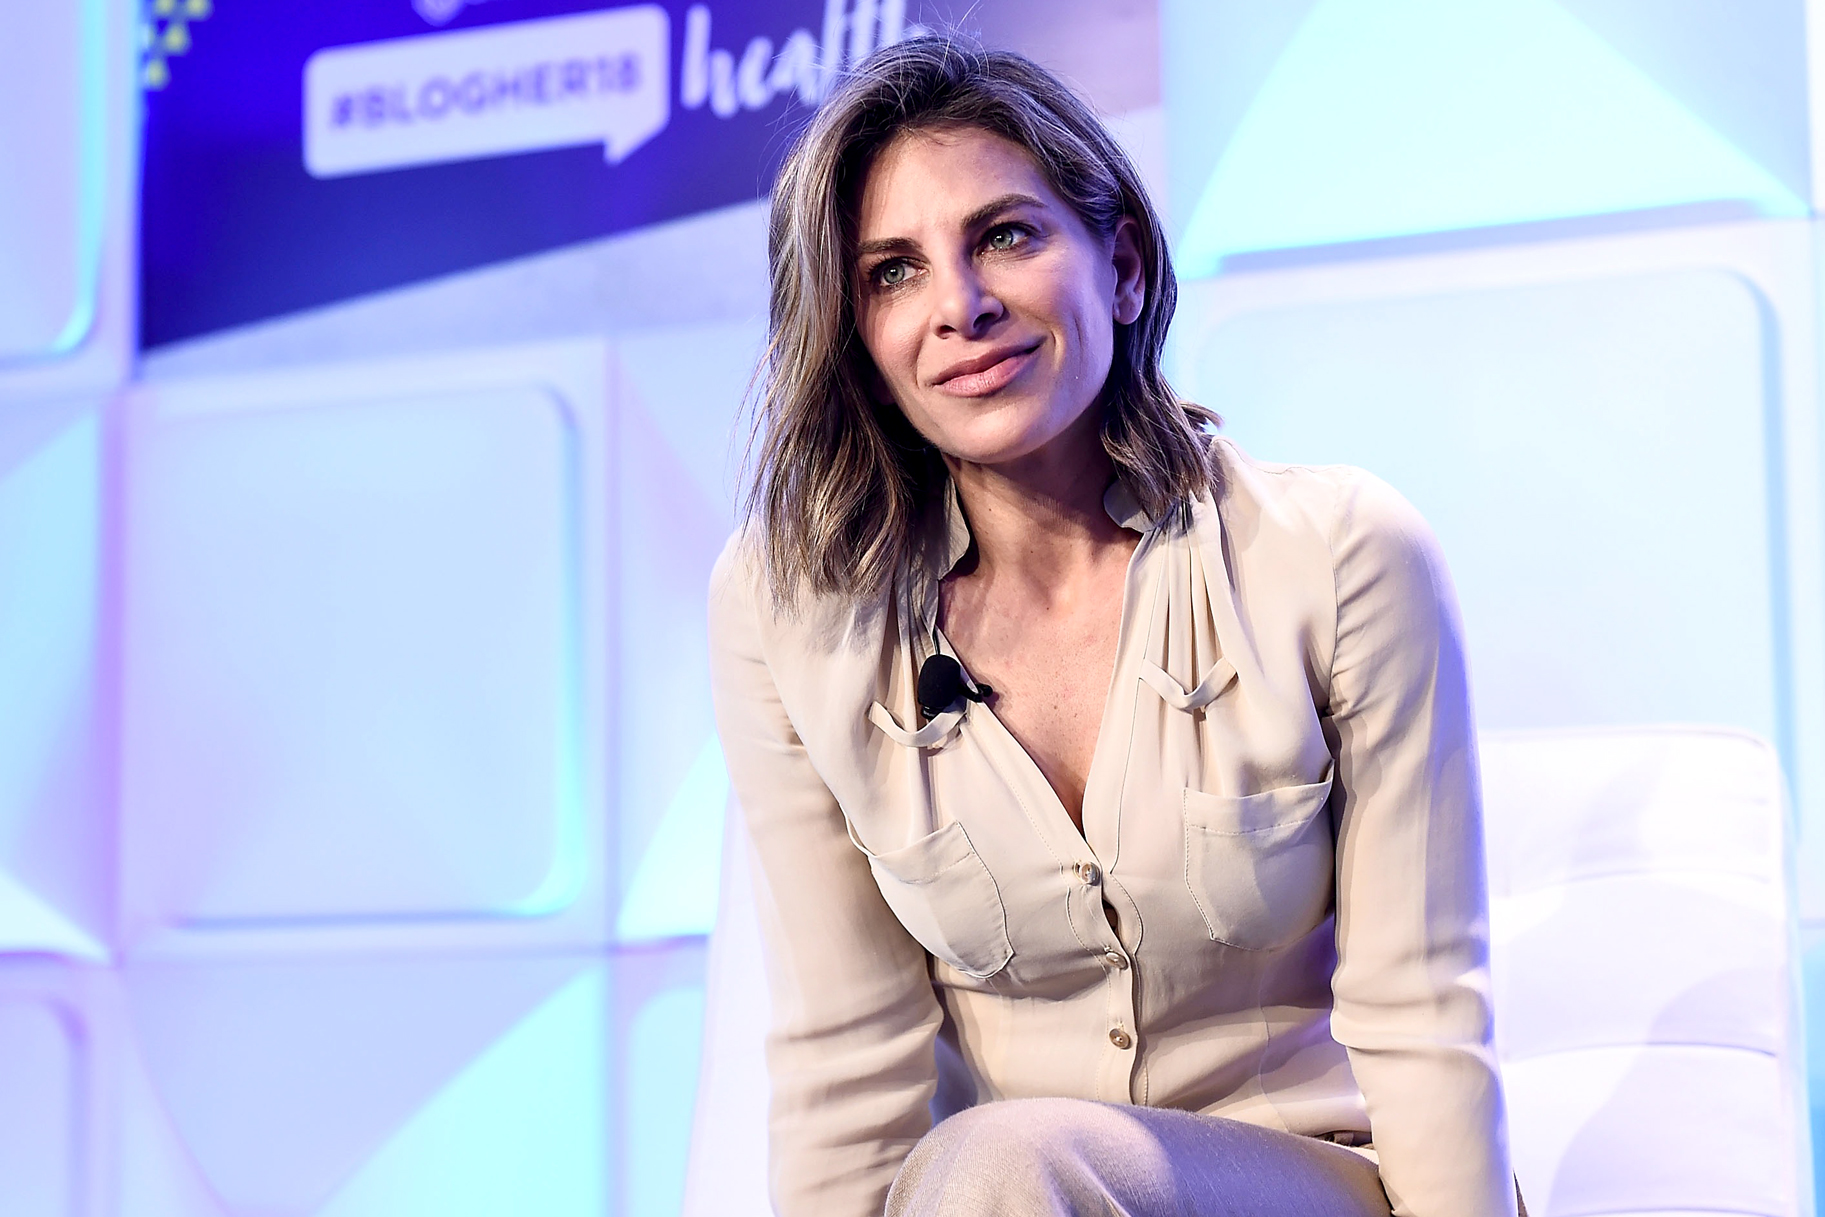 Jillian Michaels on the Keto Diet